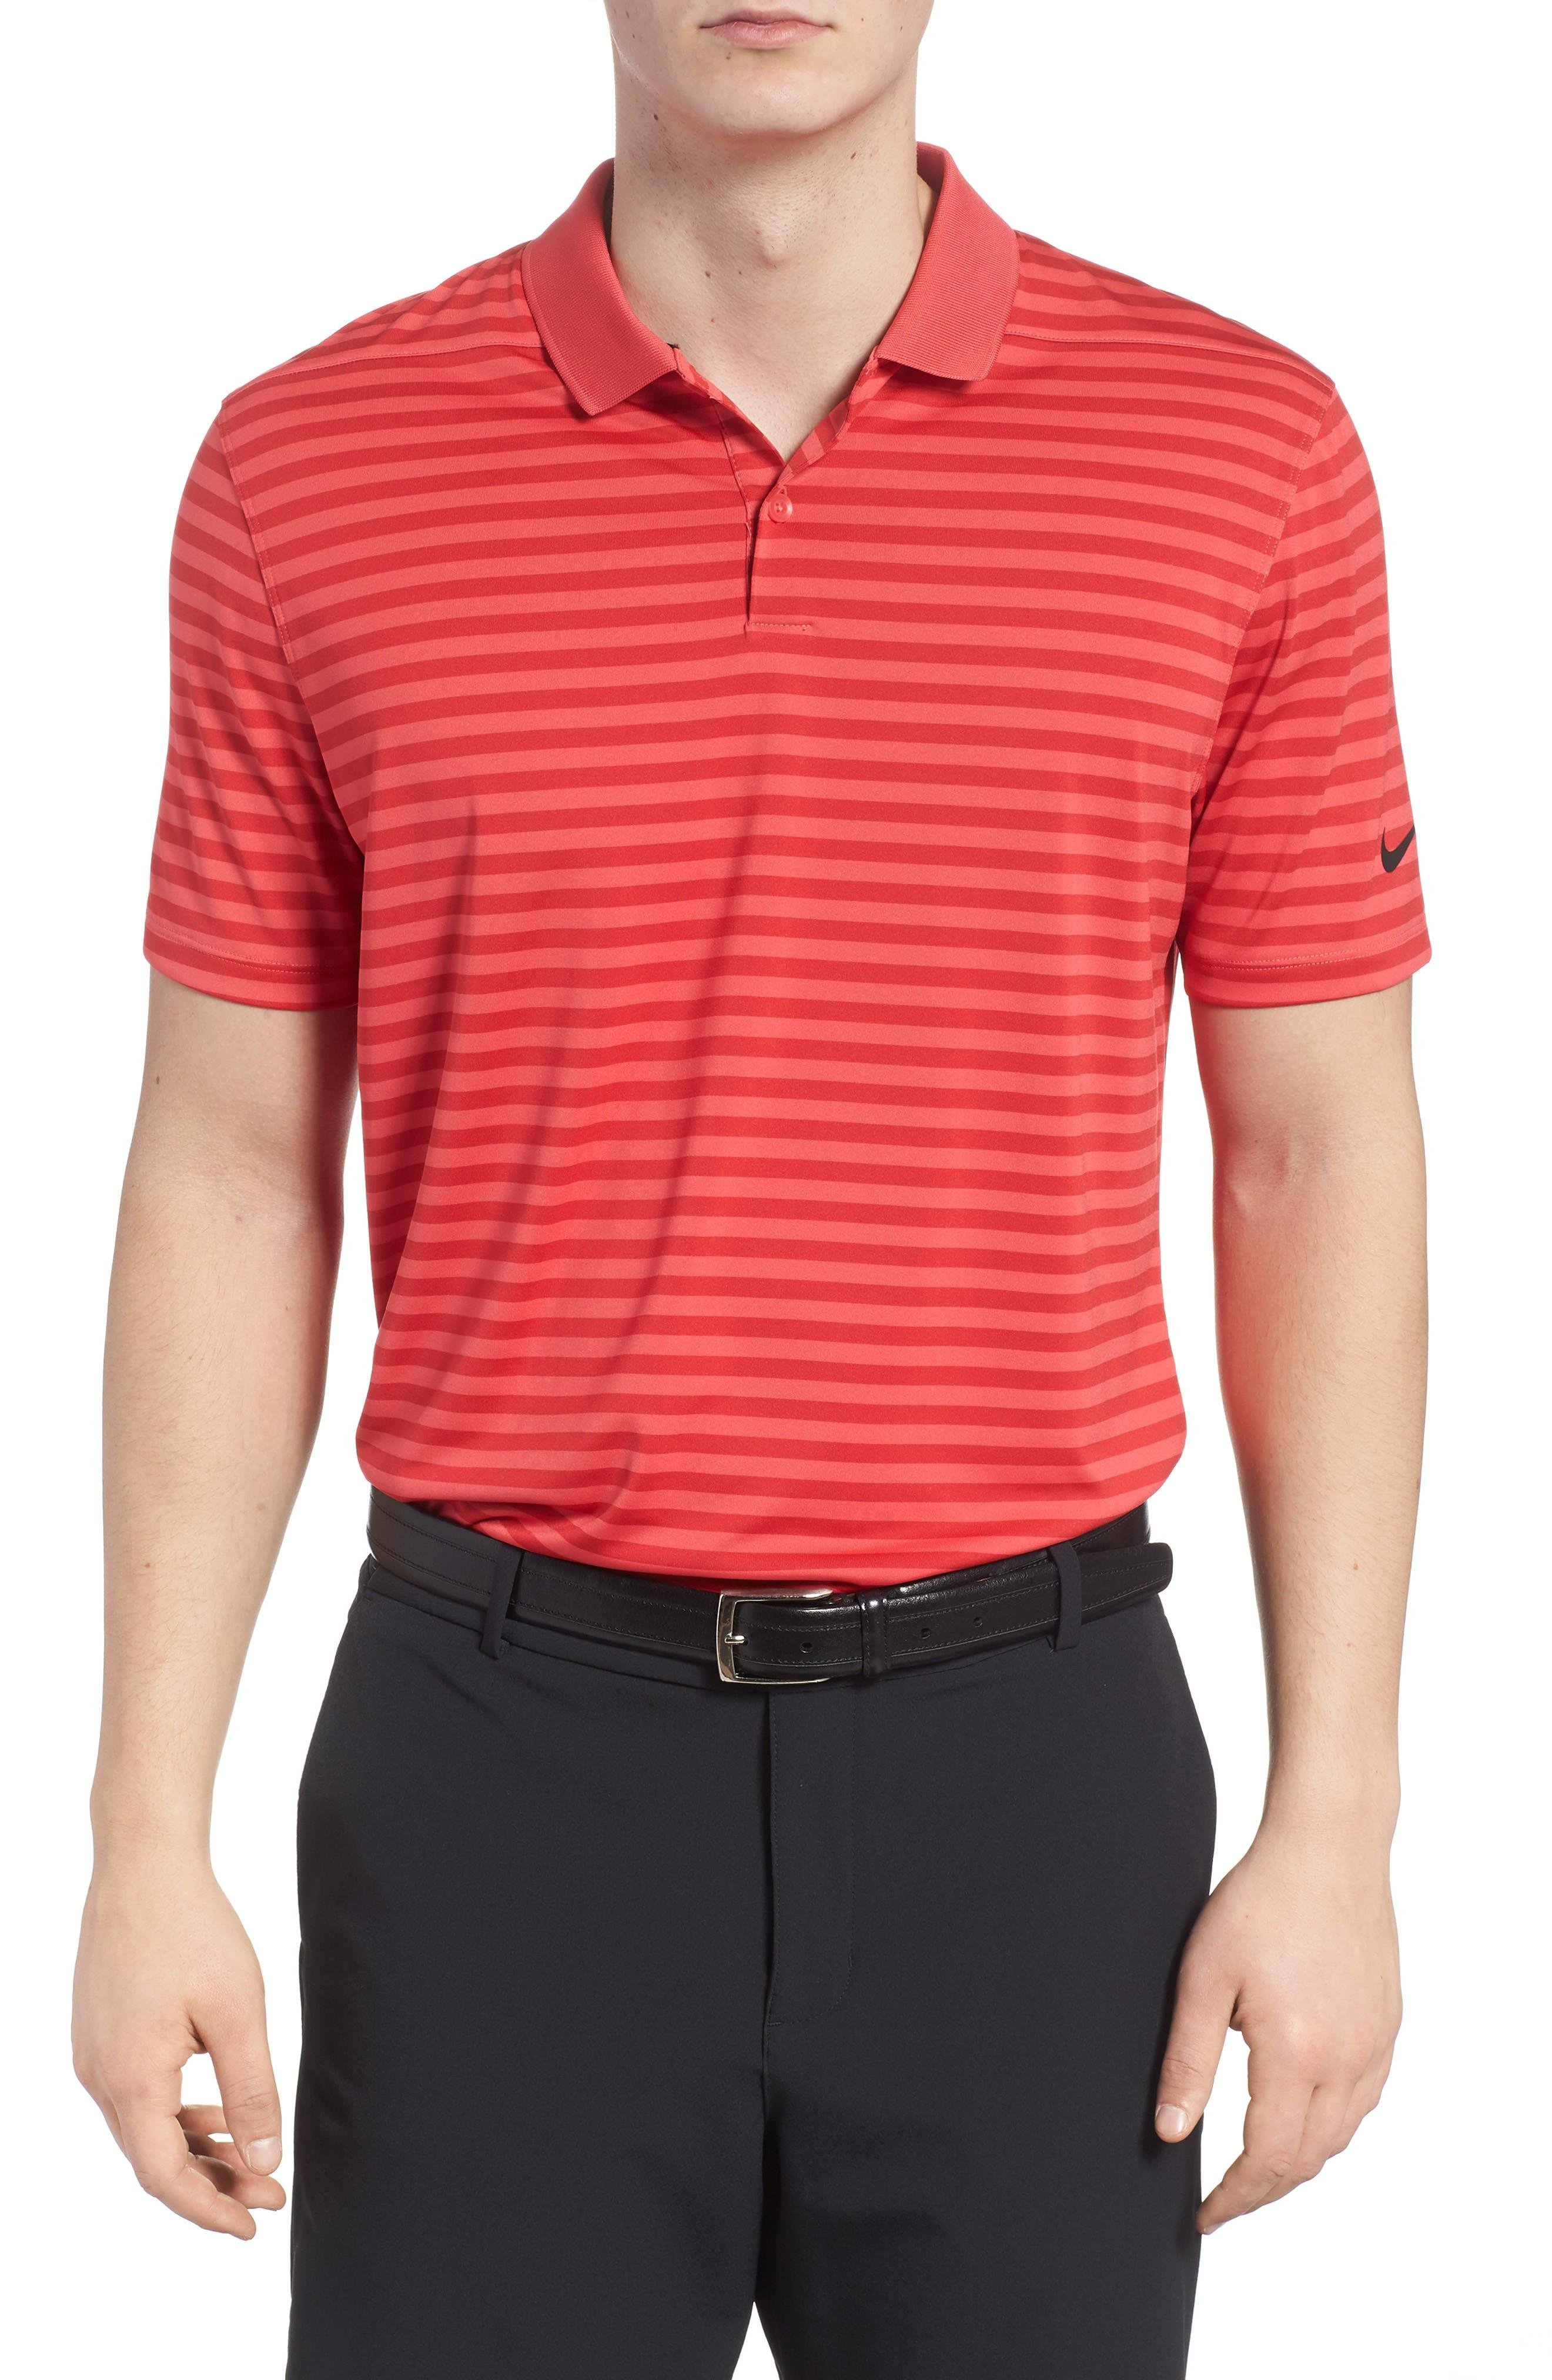 0298770e0 Nike Dry Victory Stripe Golf Polo In Tropical Pink/ Red/ Black ...